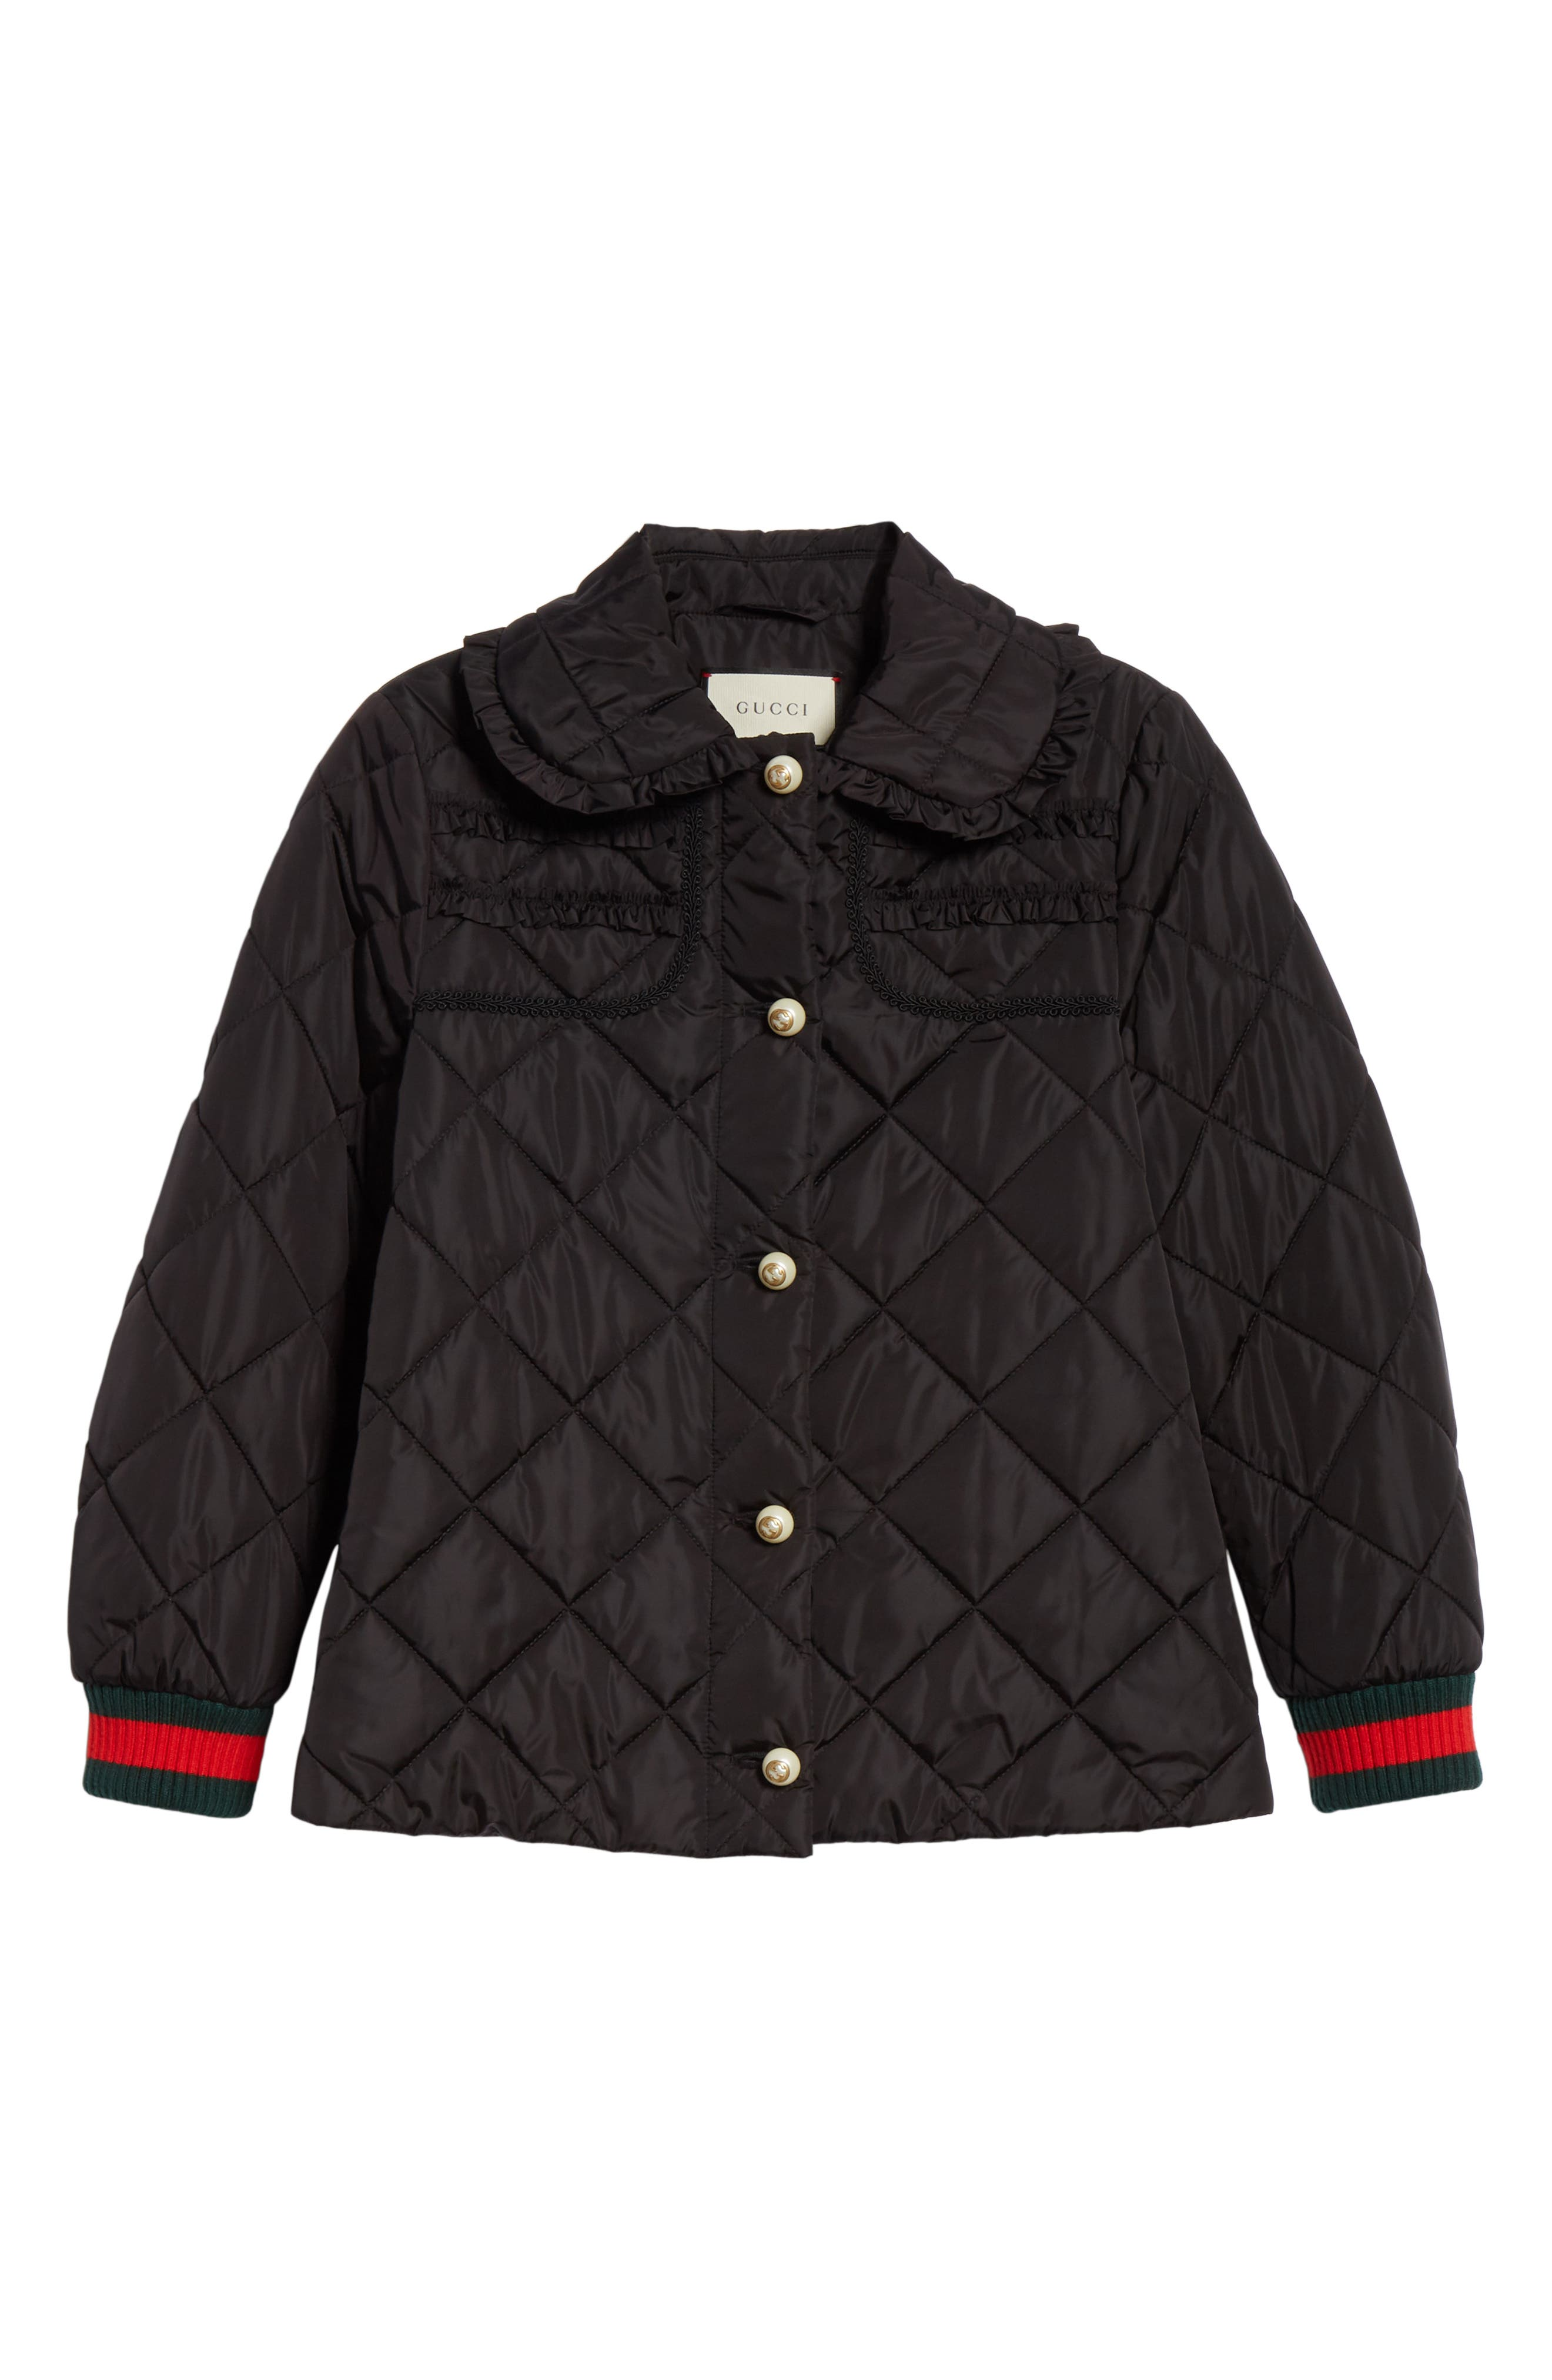 GUCCI, Ruffle Trim Quilted Caban, Alternate thumbnail 5, color, NERO